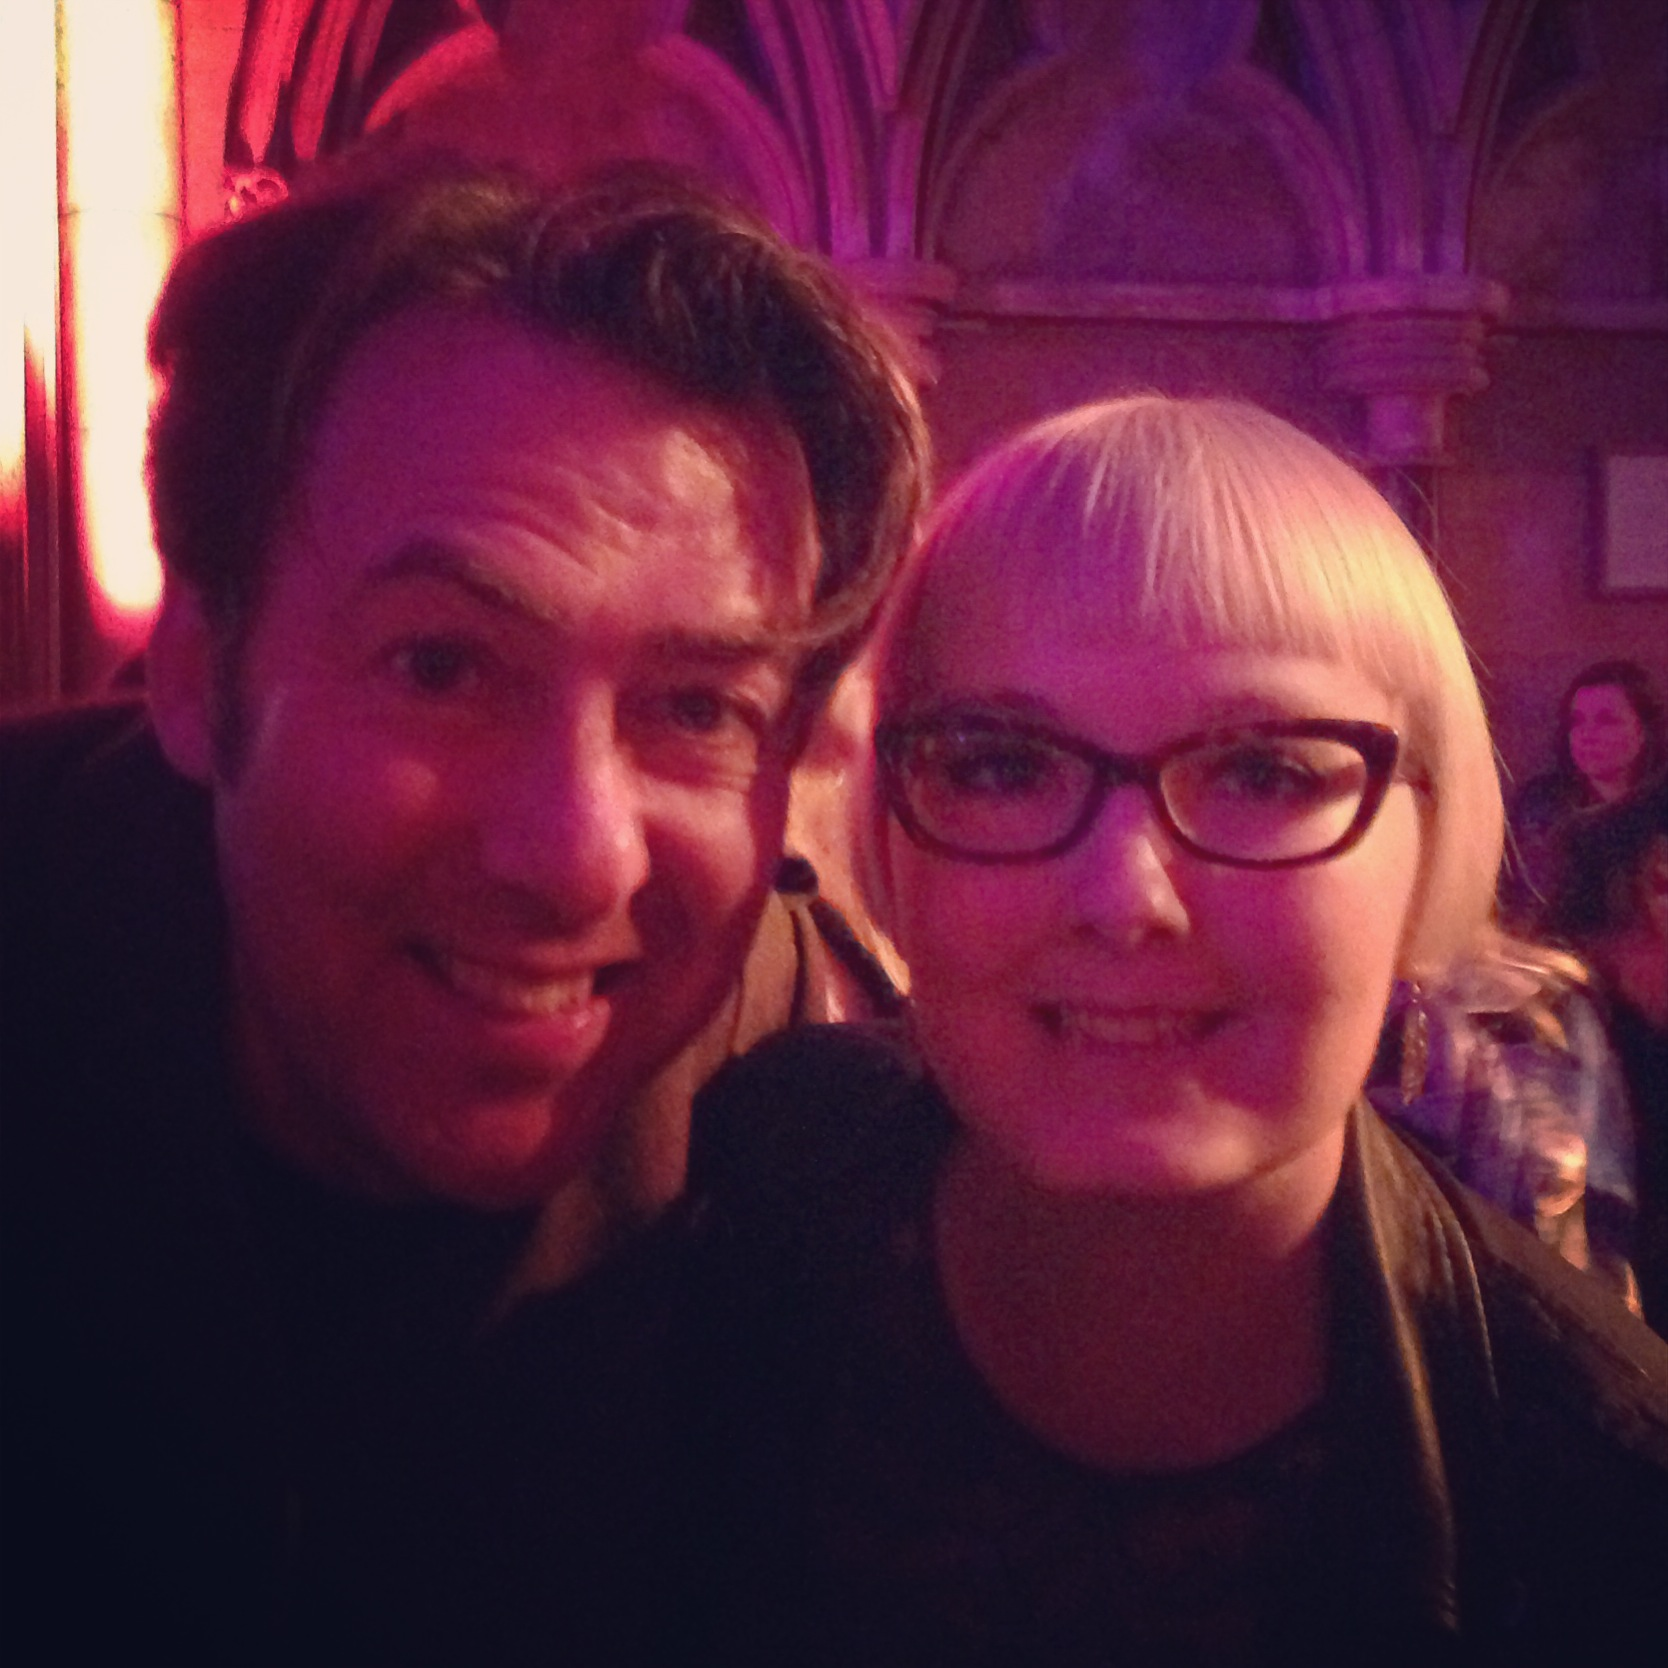 kathryn and wossy